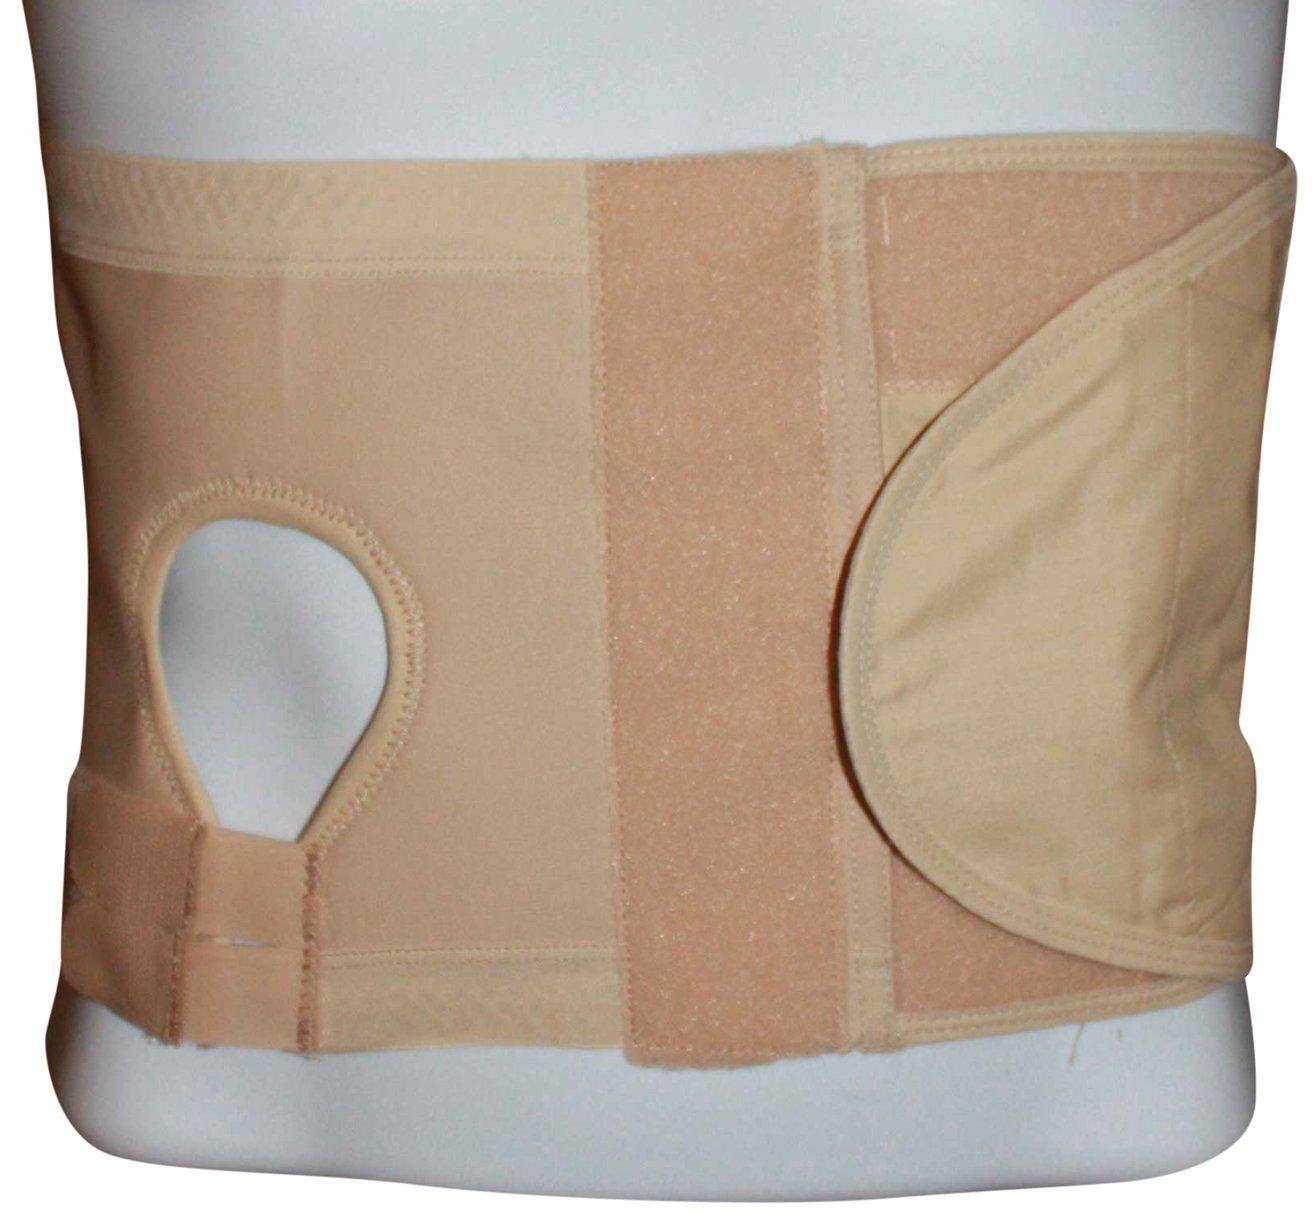 Safe n' Simple Left Hernia Support Belt with Adjustable Hole, 20cm, Beige, X-Small